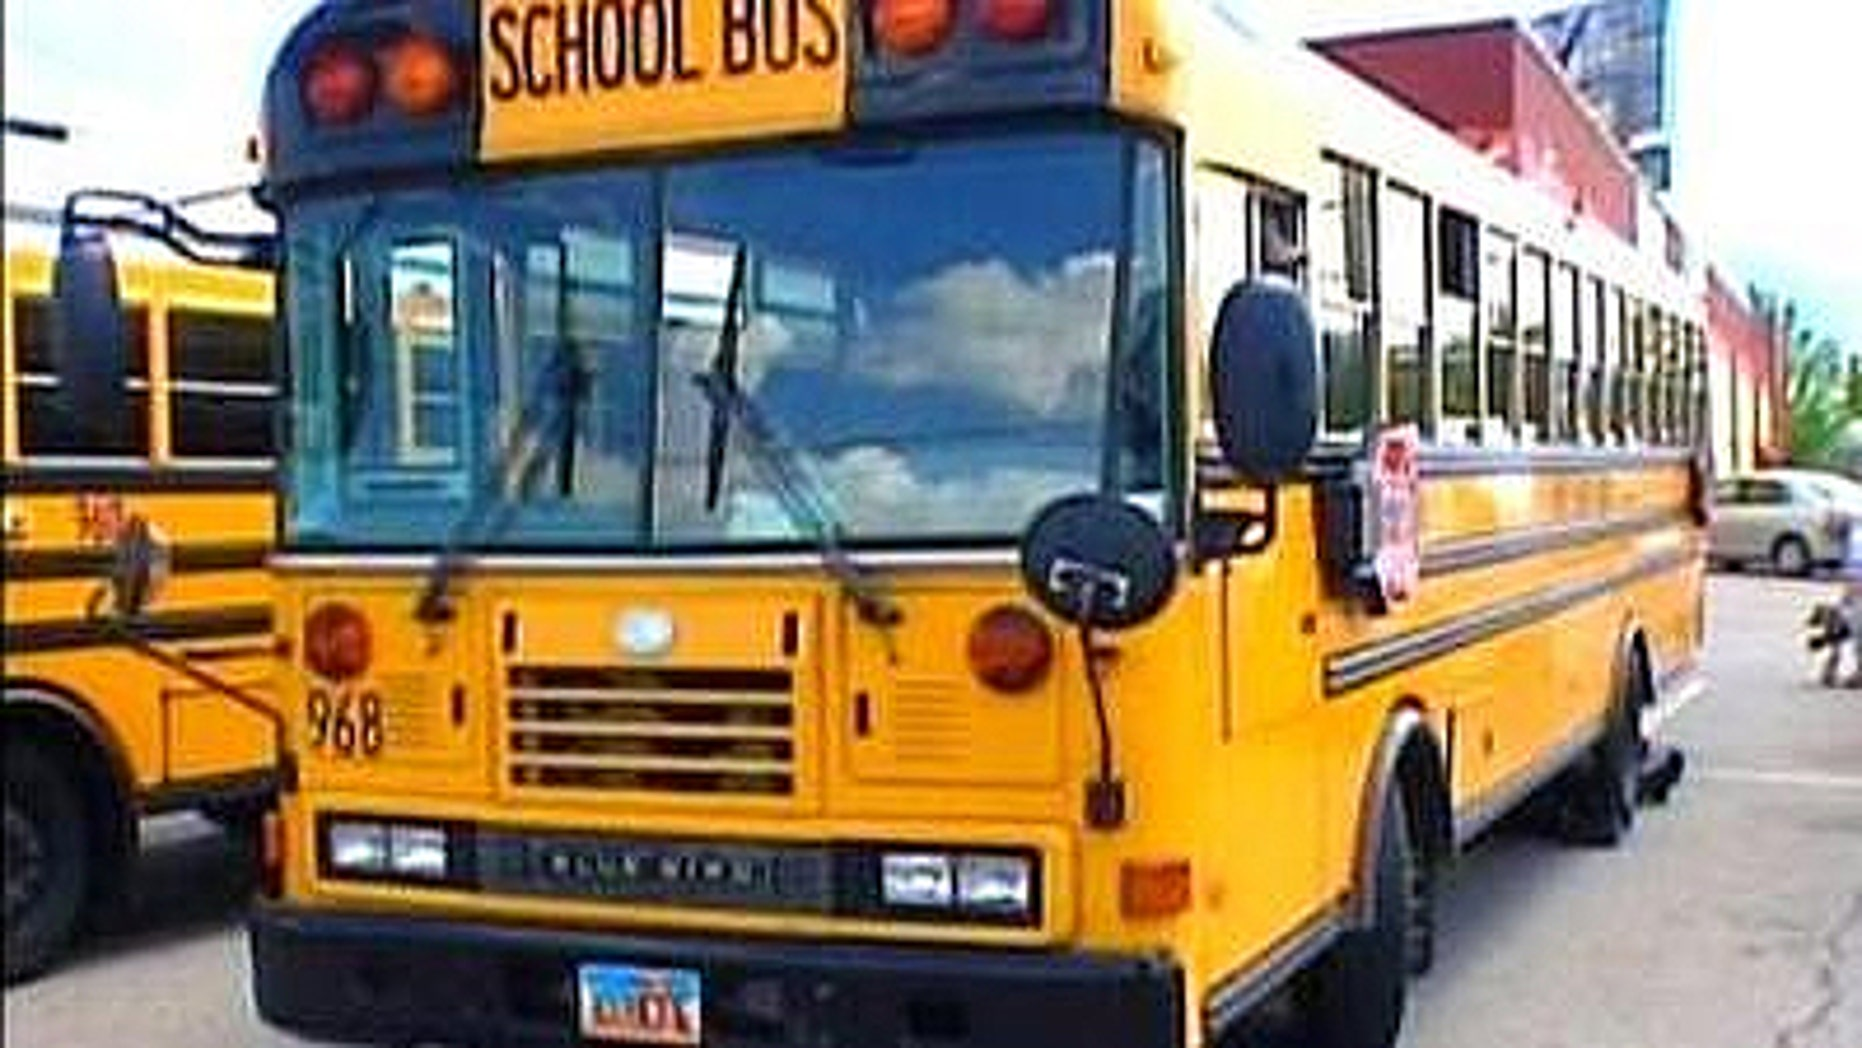 This photo shows a school bus from Granite School District in Utah.